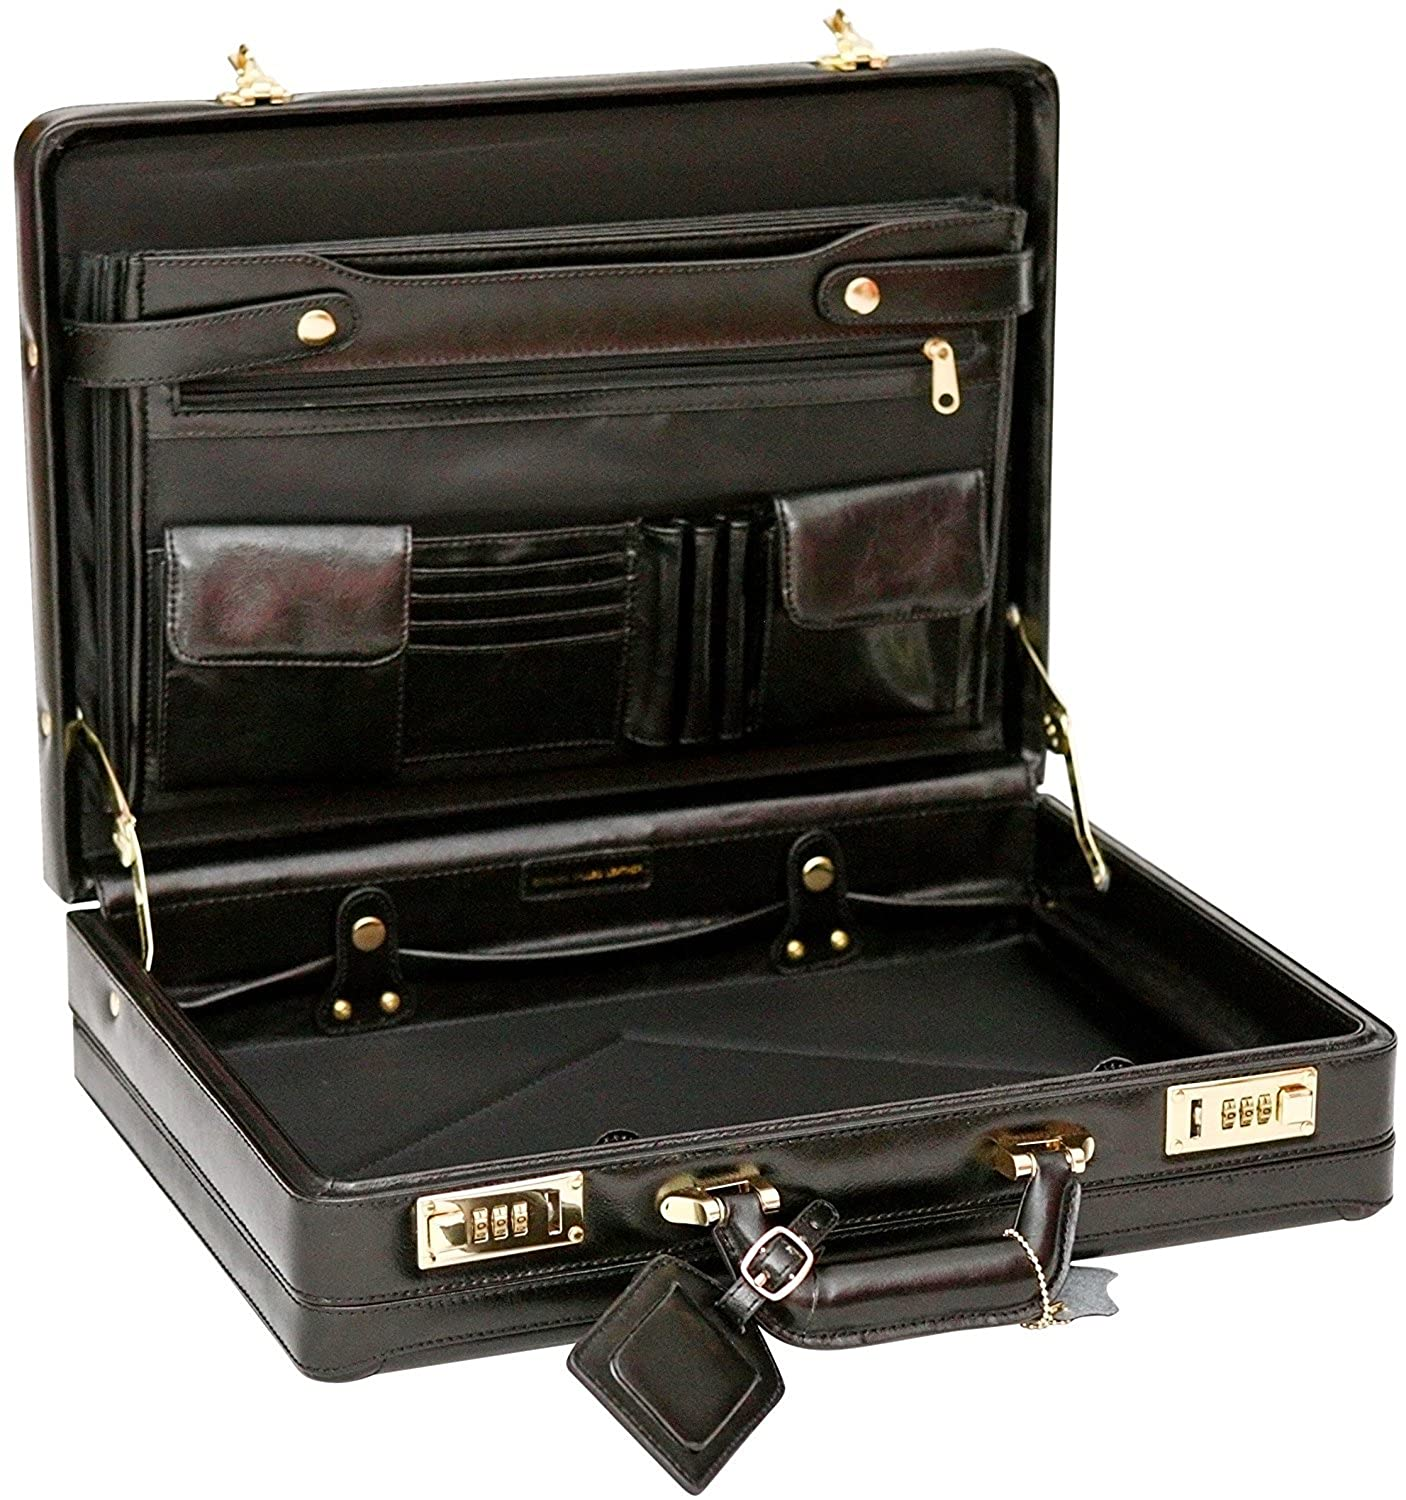 Tassia Bonded Leather Attaché Briefcase - Internal Expanding Filing Pockets  - Black  Amazon.co.uk  Clothing eeed720b488fc